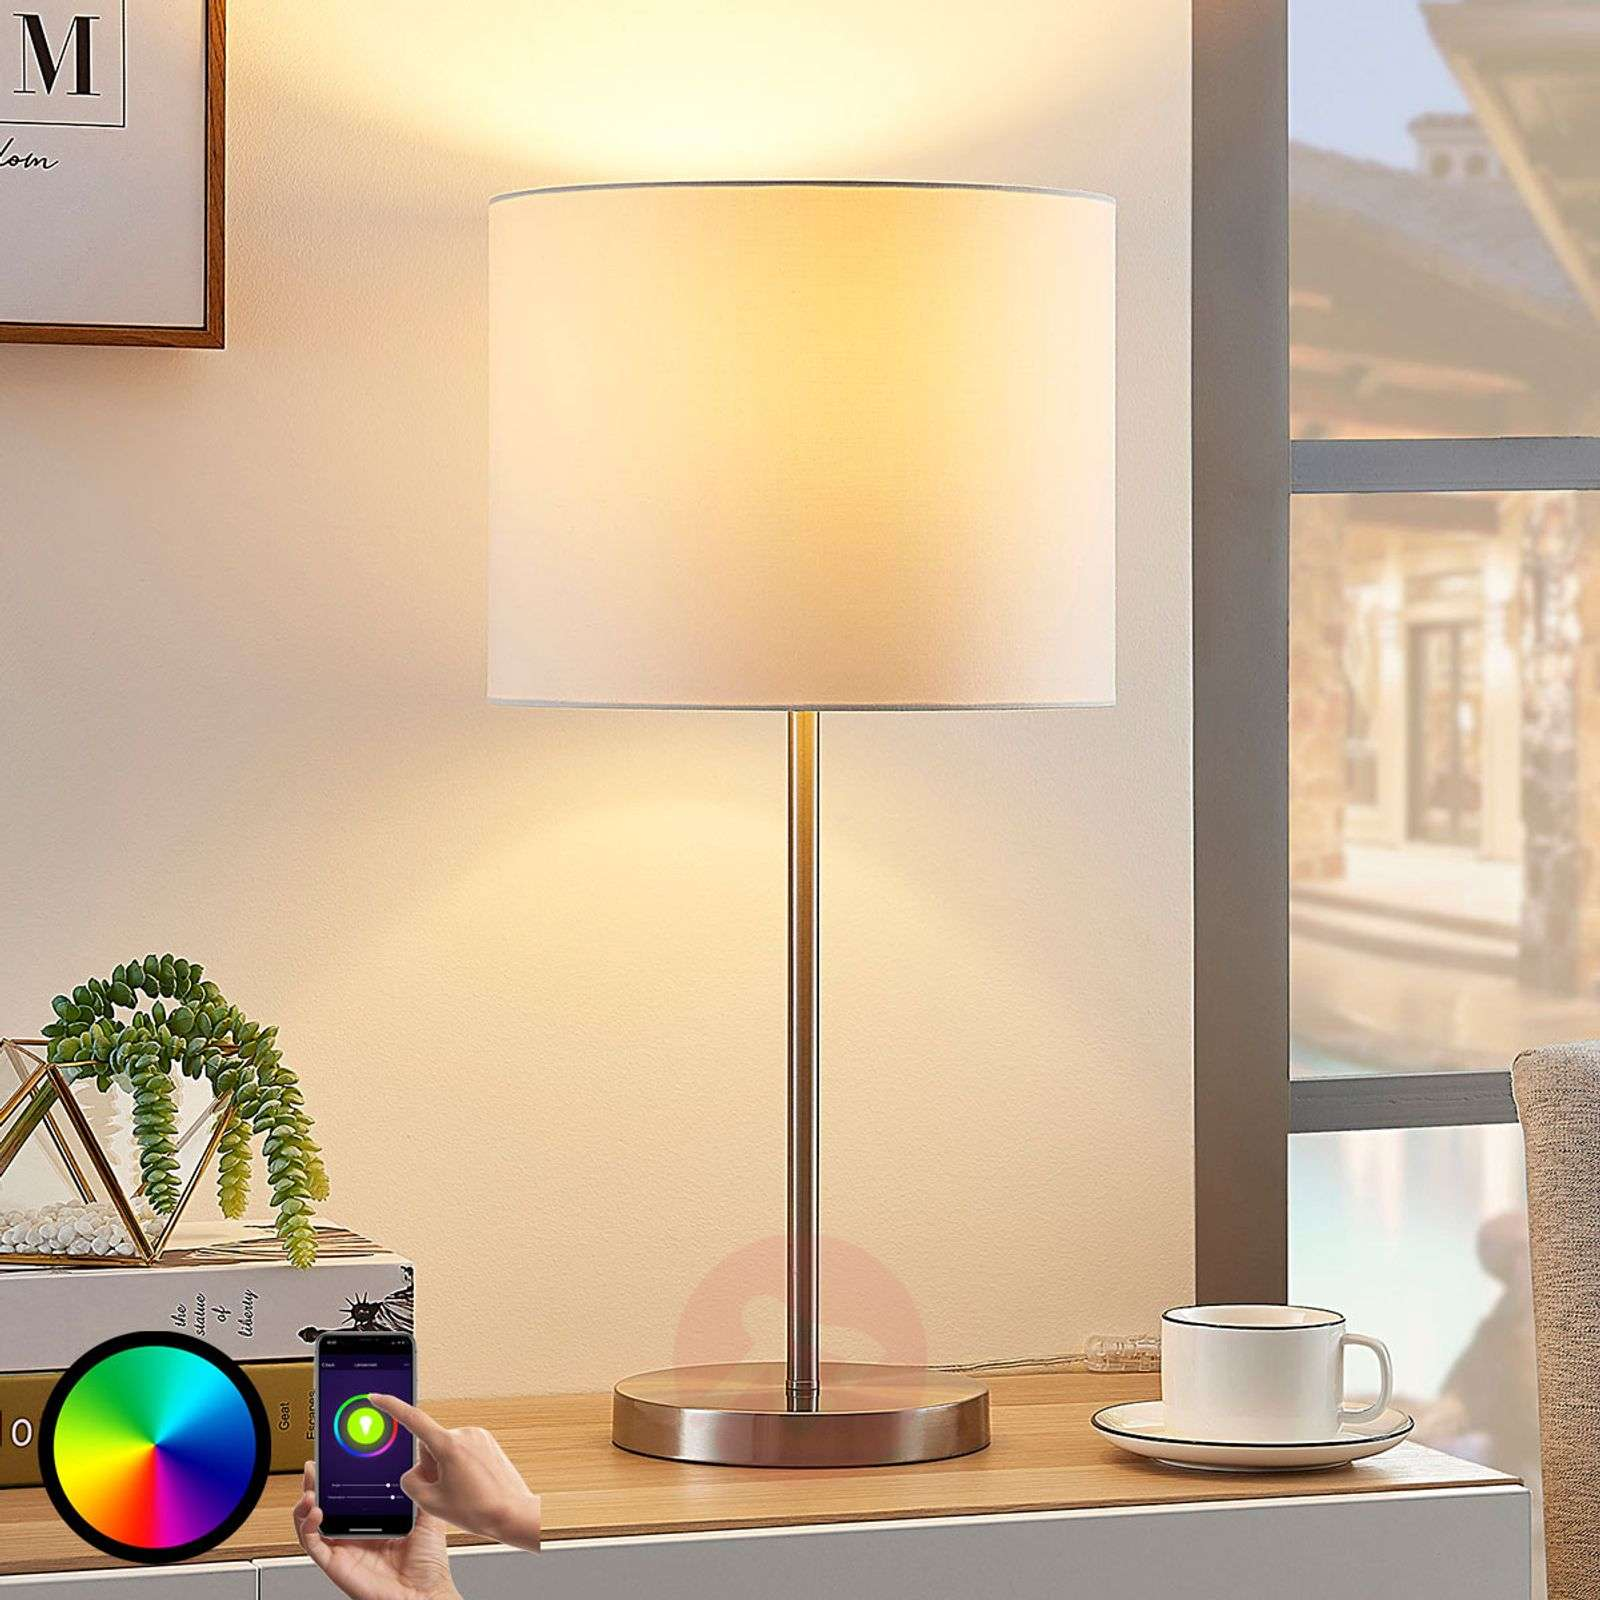 Lindby Smart stoffen tafellamp Everly, RGB-LED-9624100-02